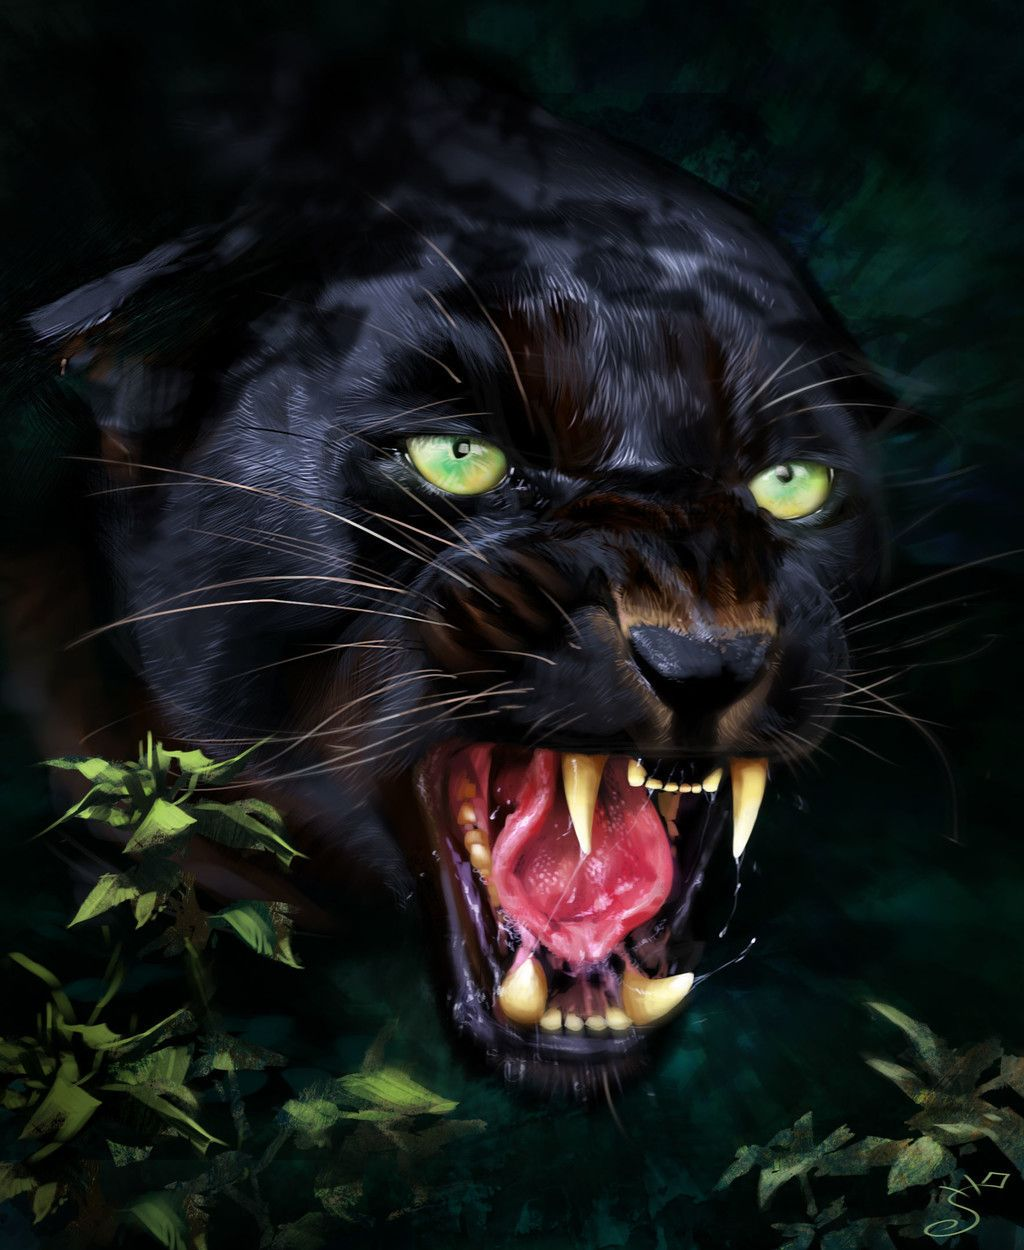 Jaguar, Predator, Black Animal, Muzzle, Art Wallpaper